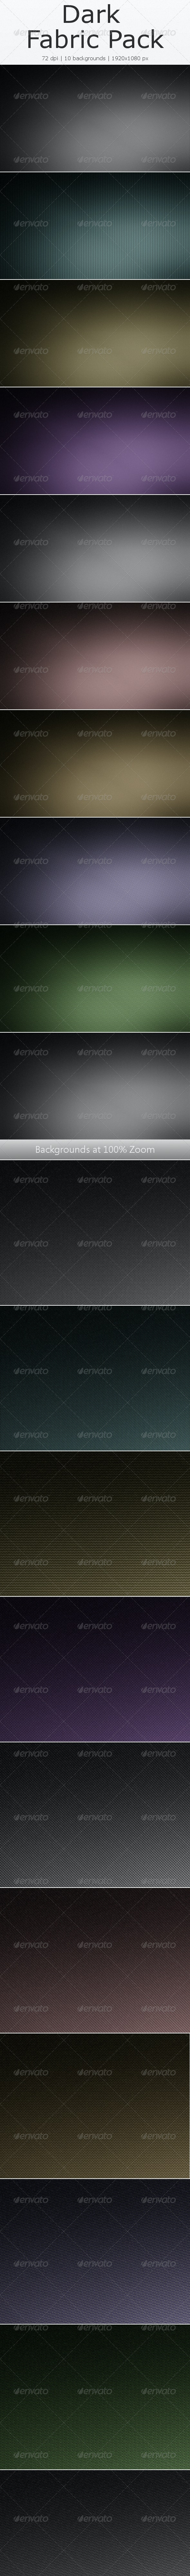 Dark Fabric Background Pack - Miscellaneous Backgrounds